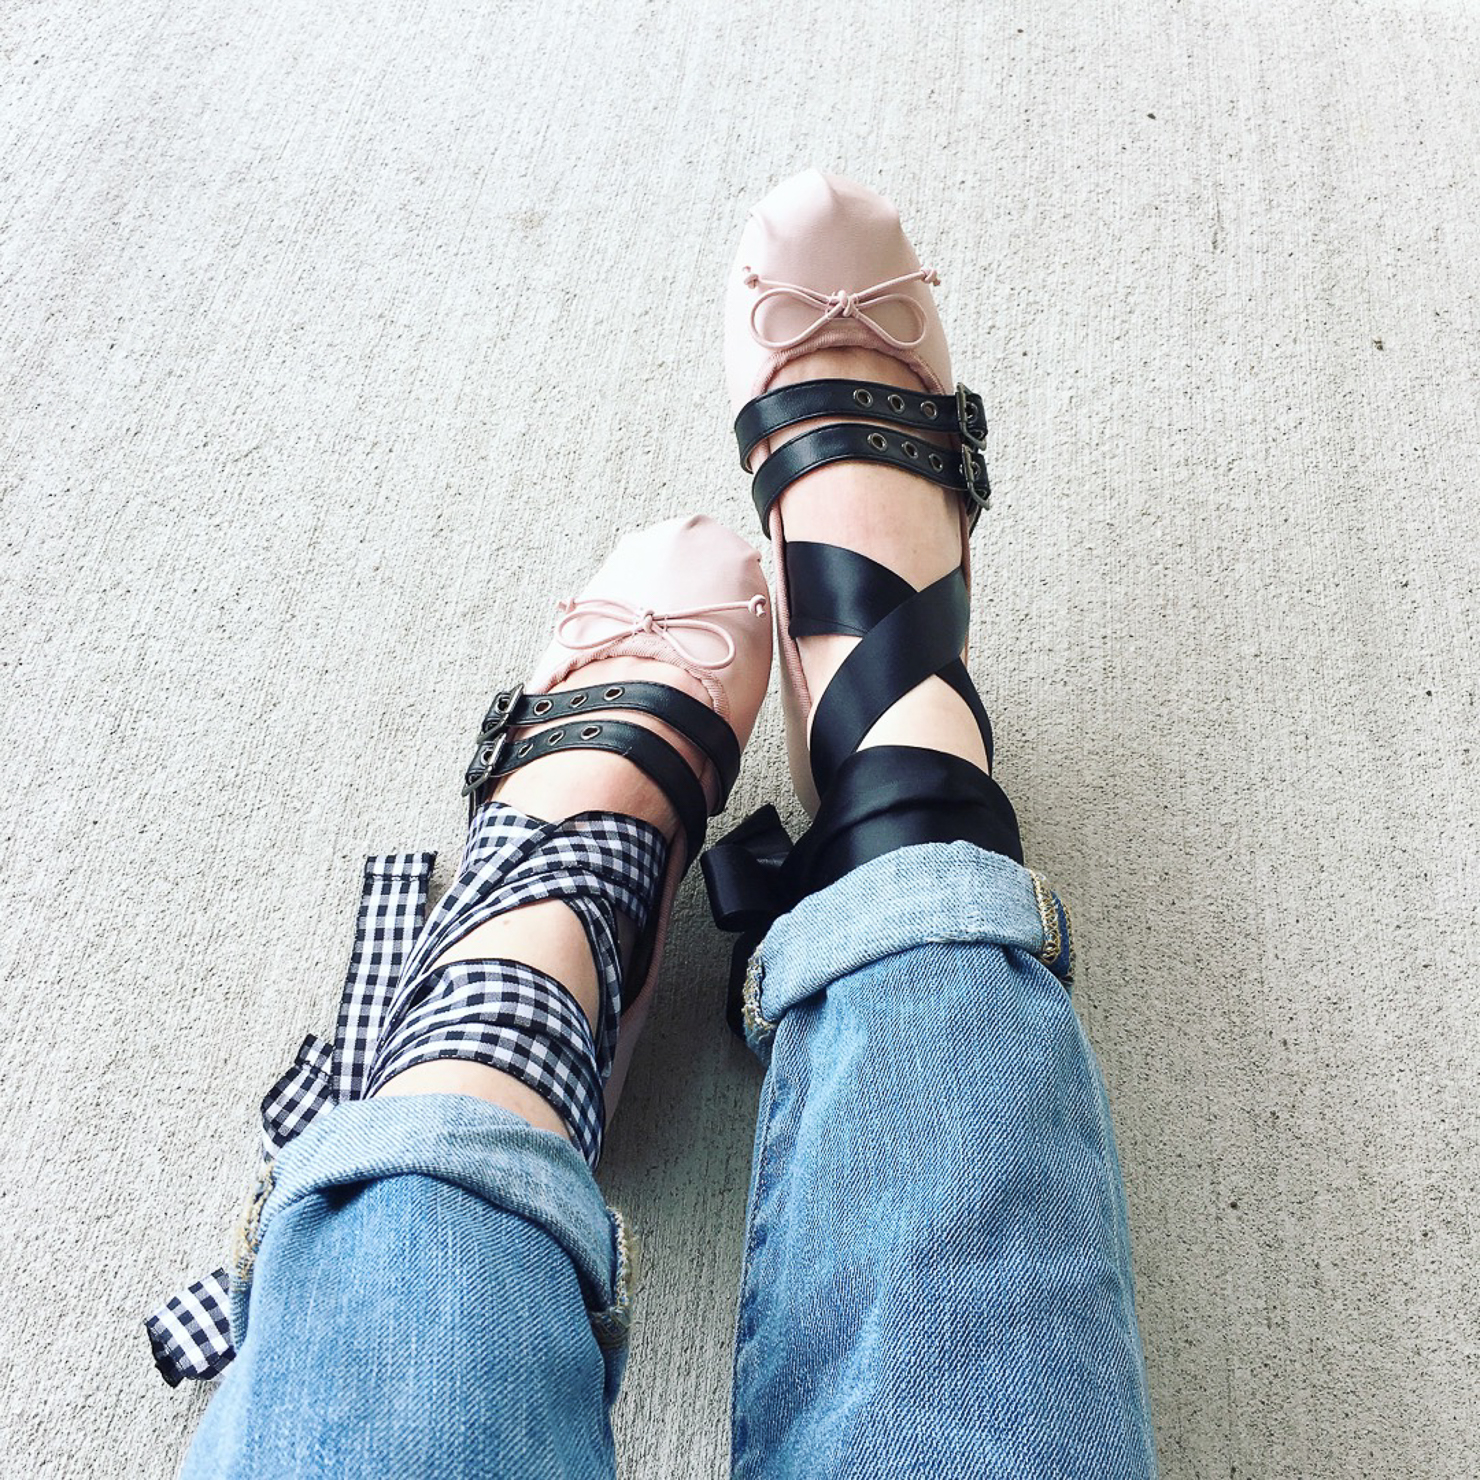 miu-miu-ballet-flat-dupes-wishes-and-reality-instagram